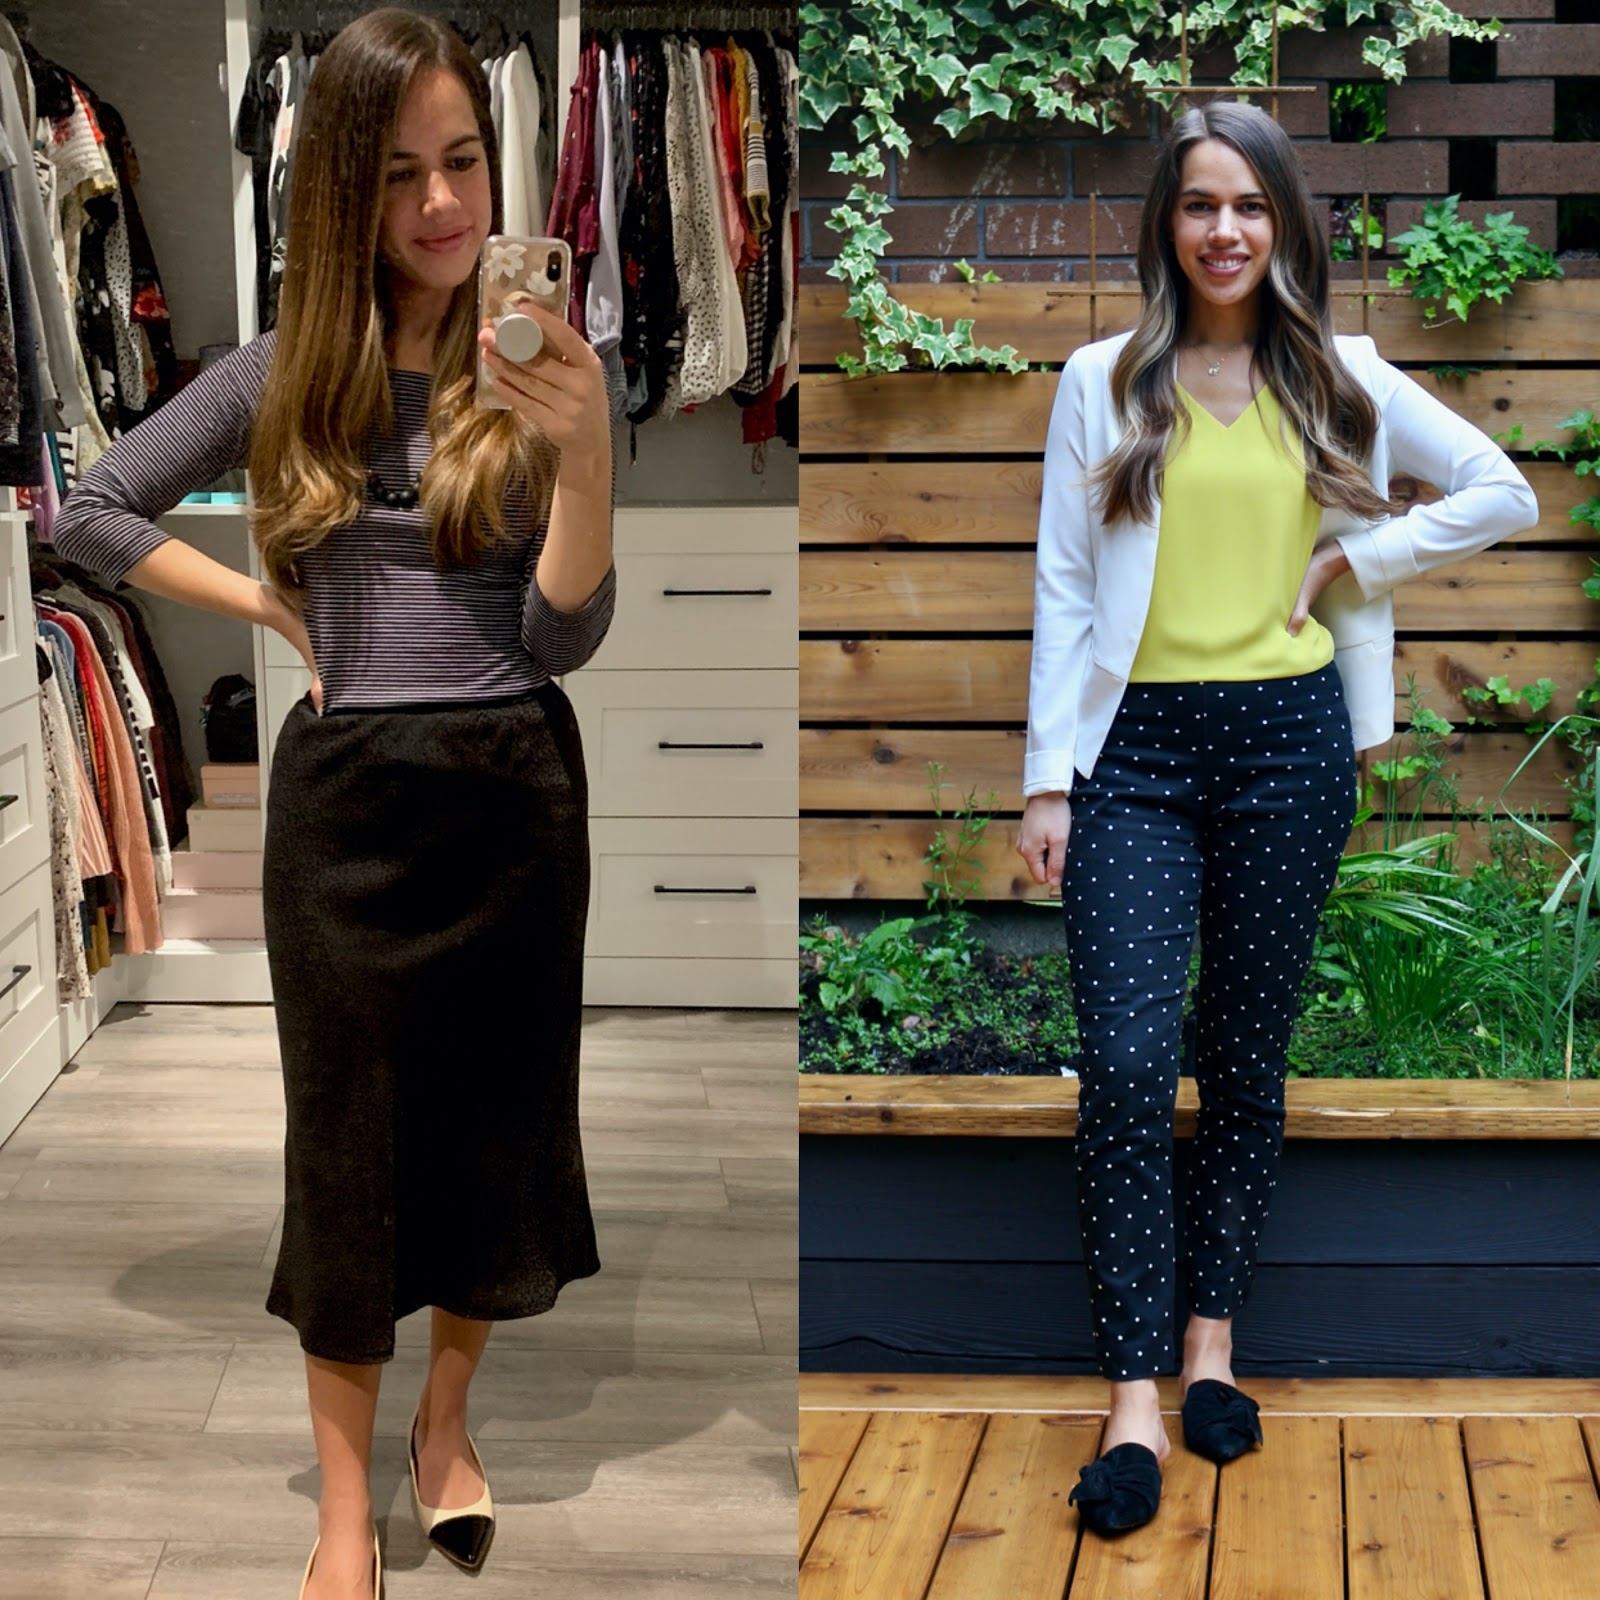 Jules in Flats - What I Wore to Work In July (Business Casual Workwear on a Budget)